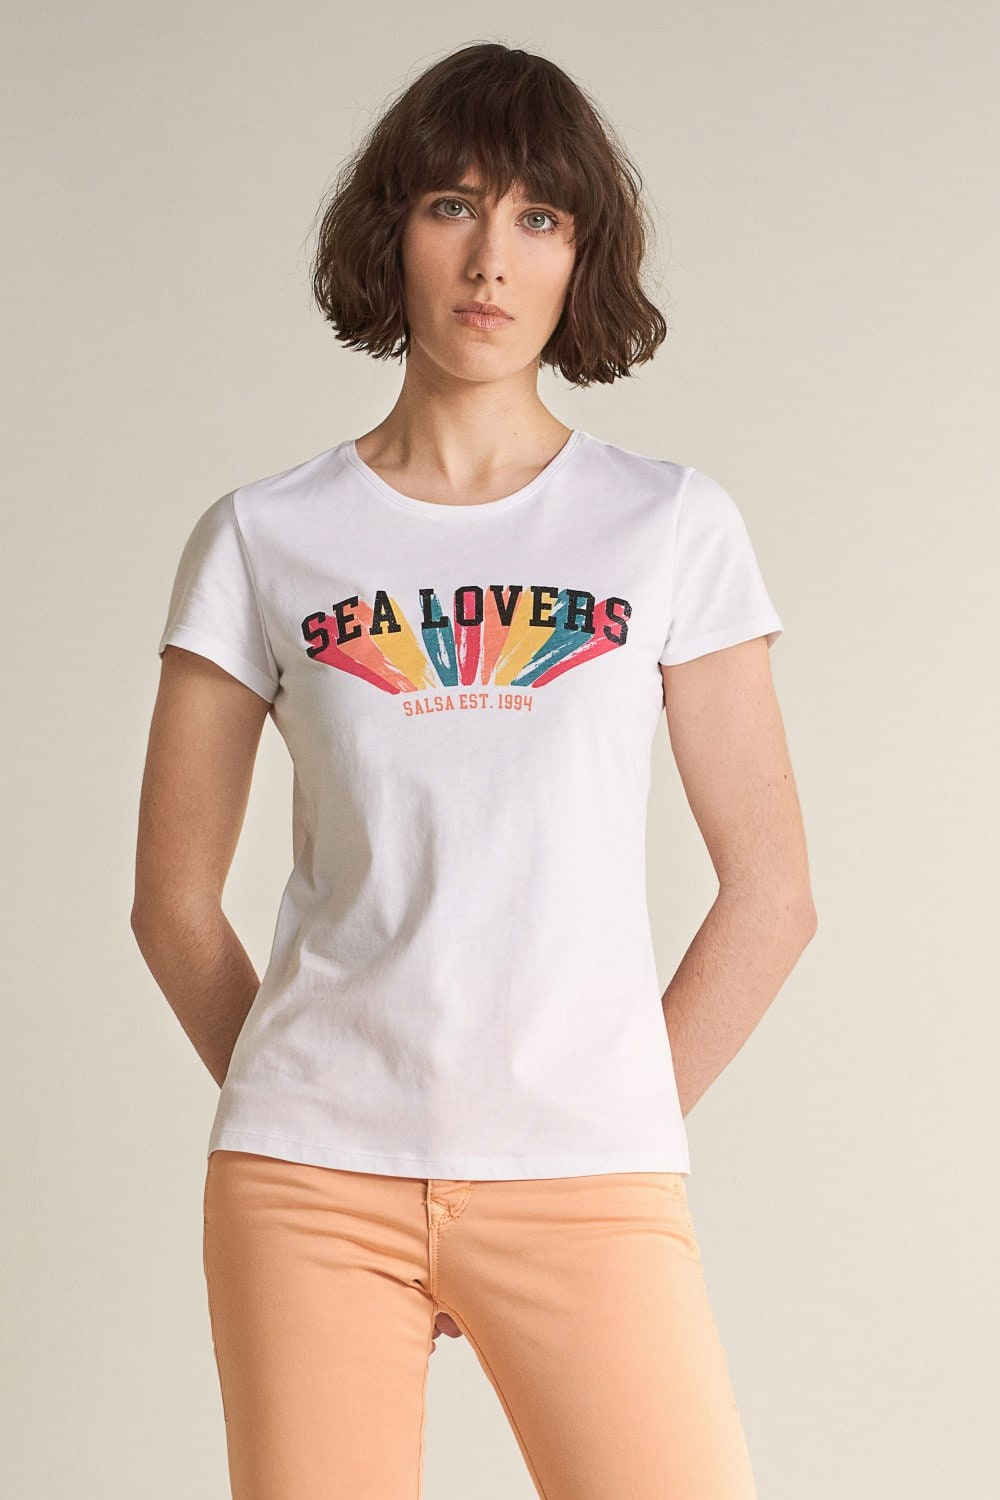 Camiseta gráfica ´sea Lovers´ - Salsa